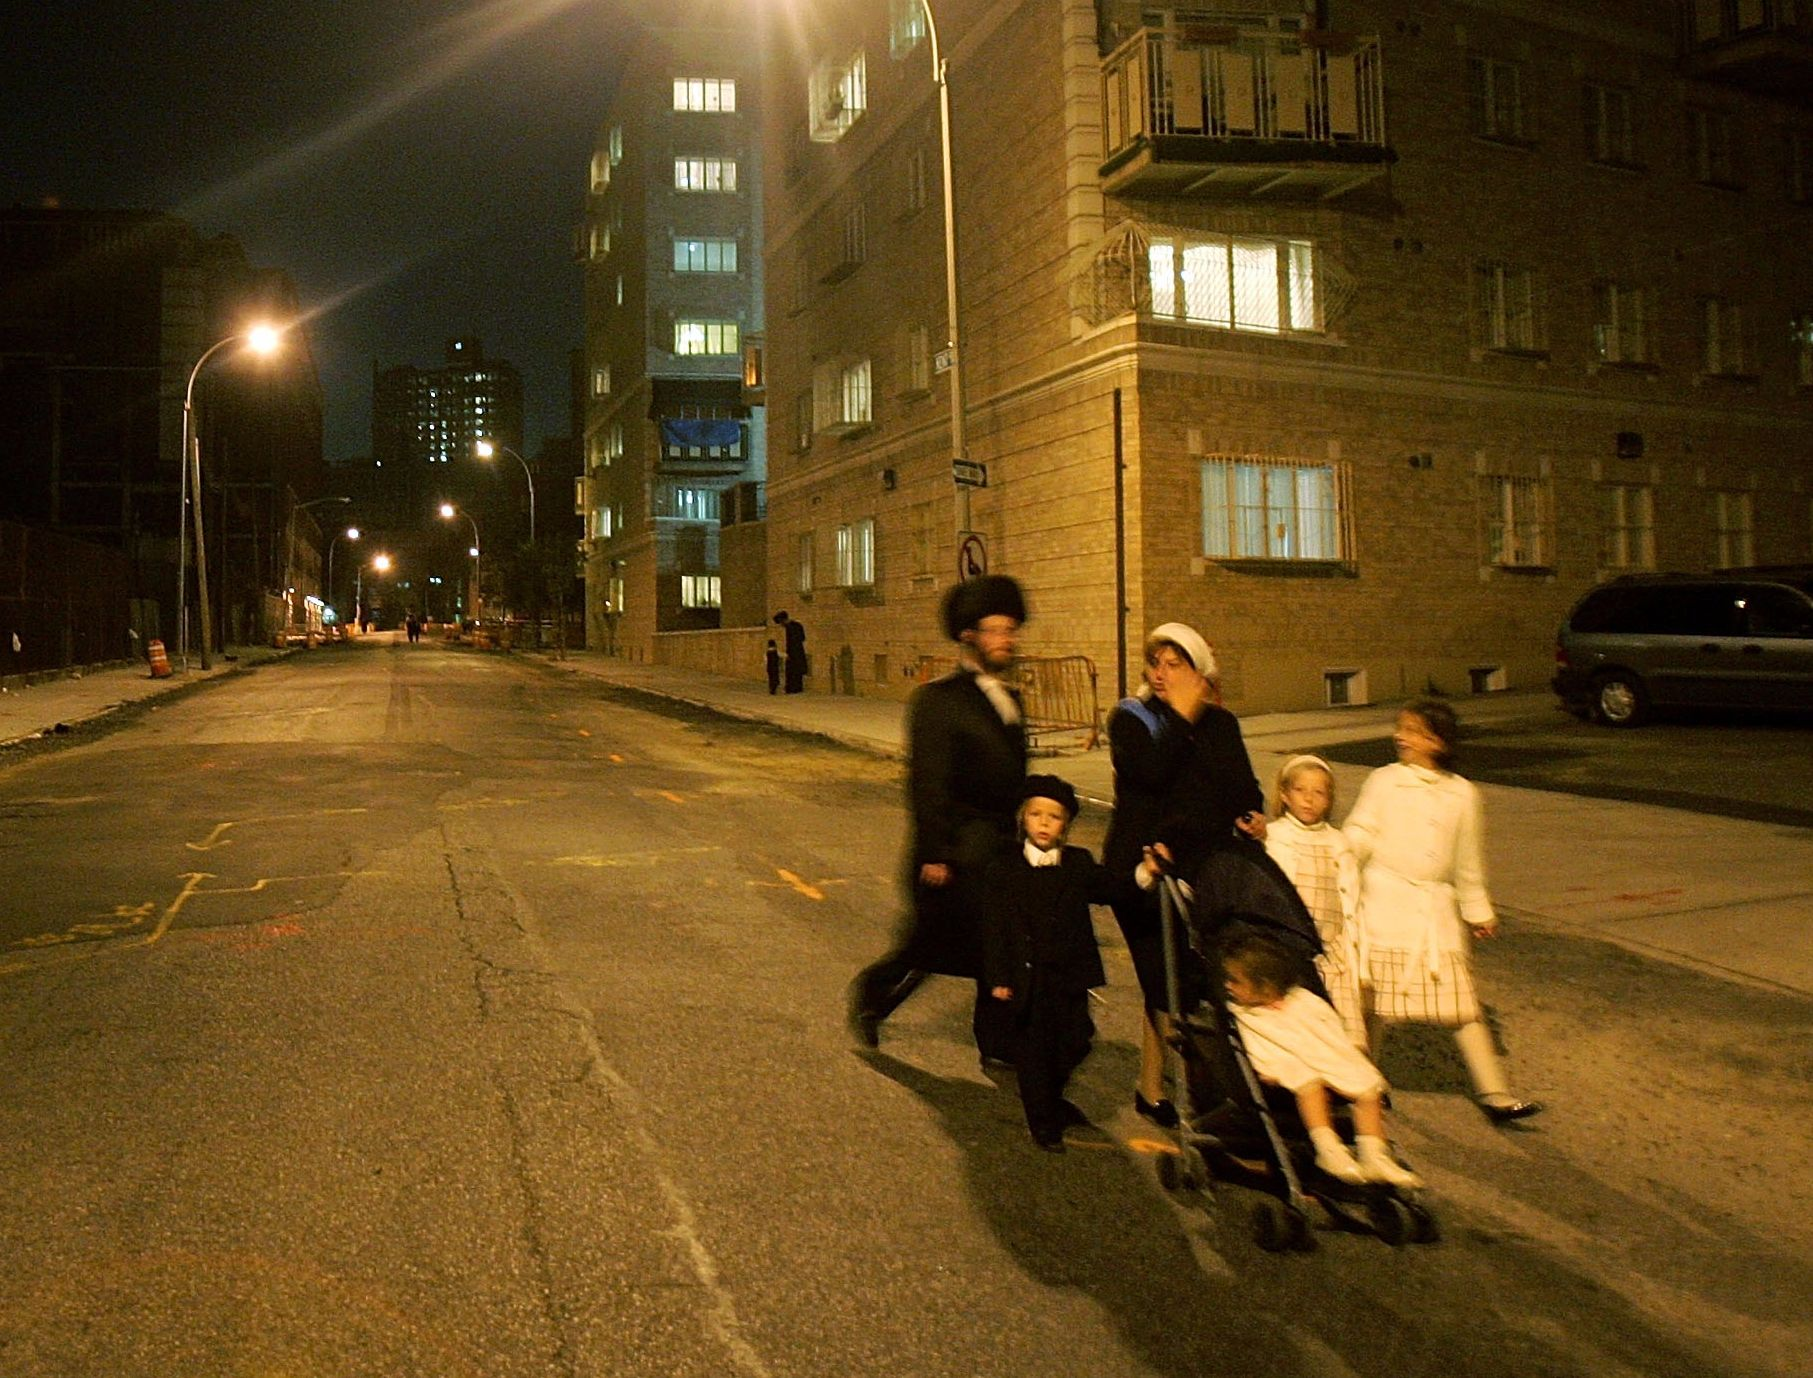 A Hasidic family on Rosh Hashanah in Brooklyn in 2005.